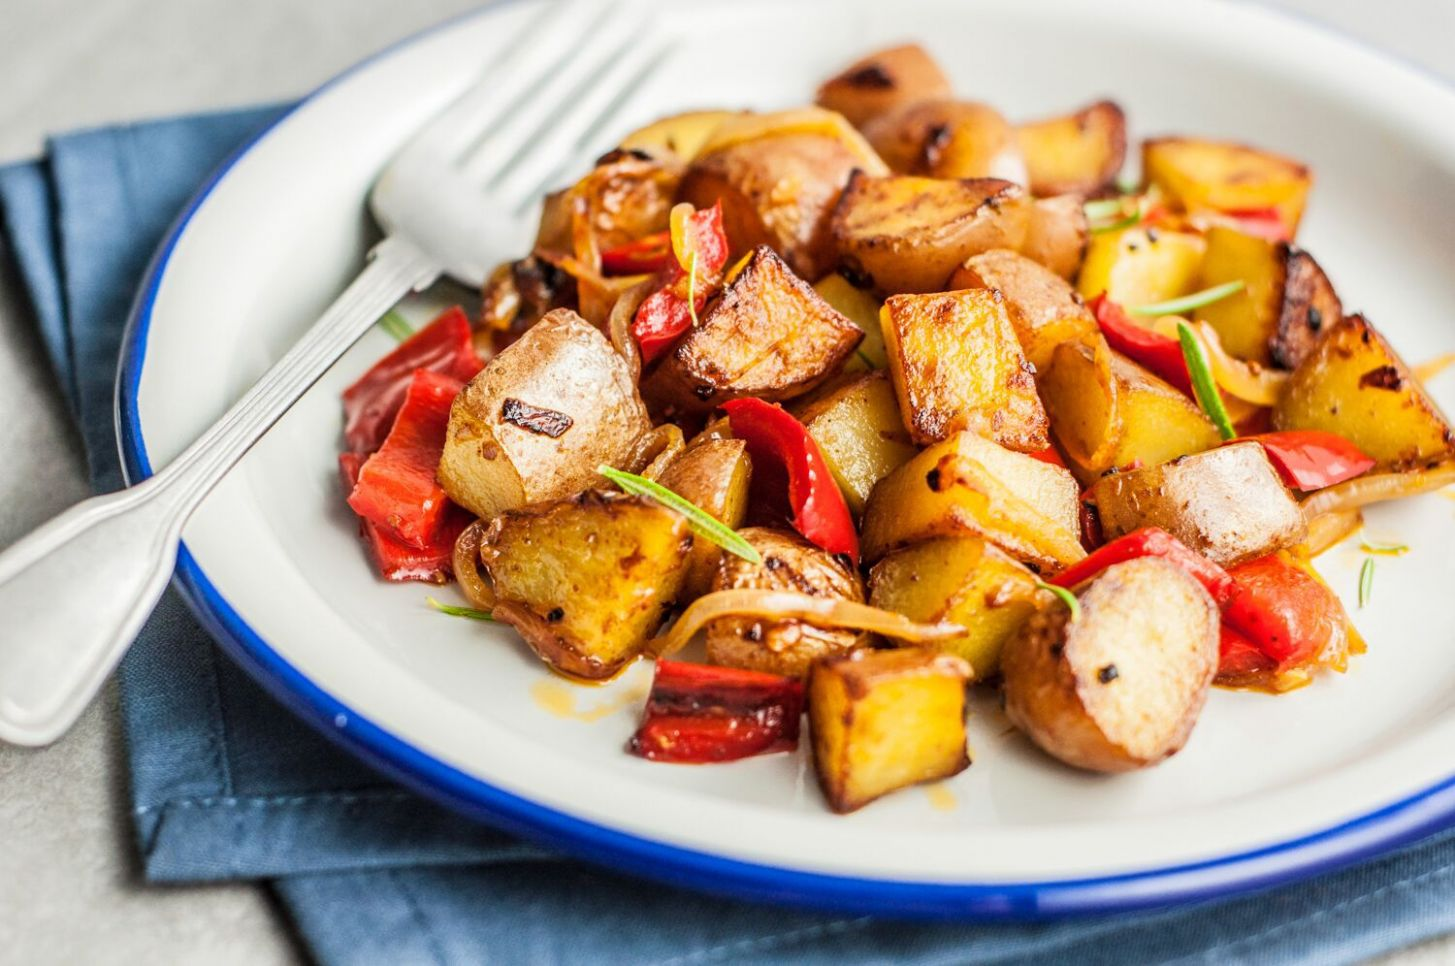 Easy Skillet Fried Potatoes - Potato Recipes On Stove Top